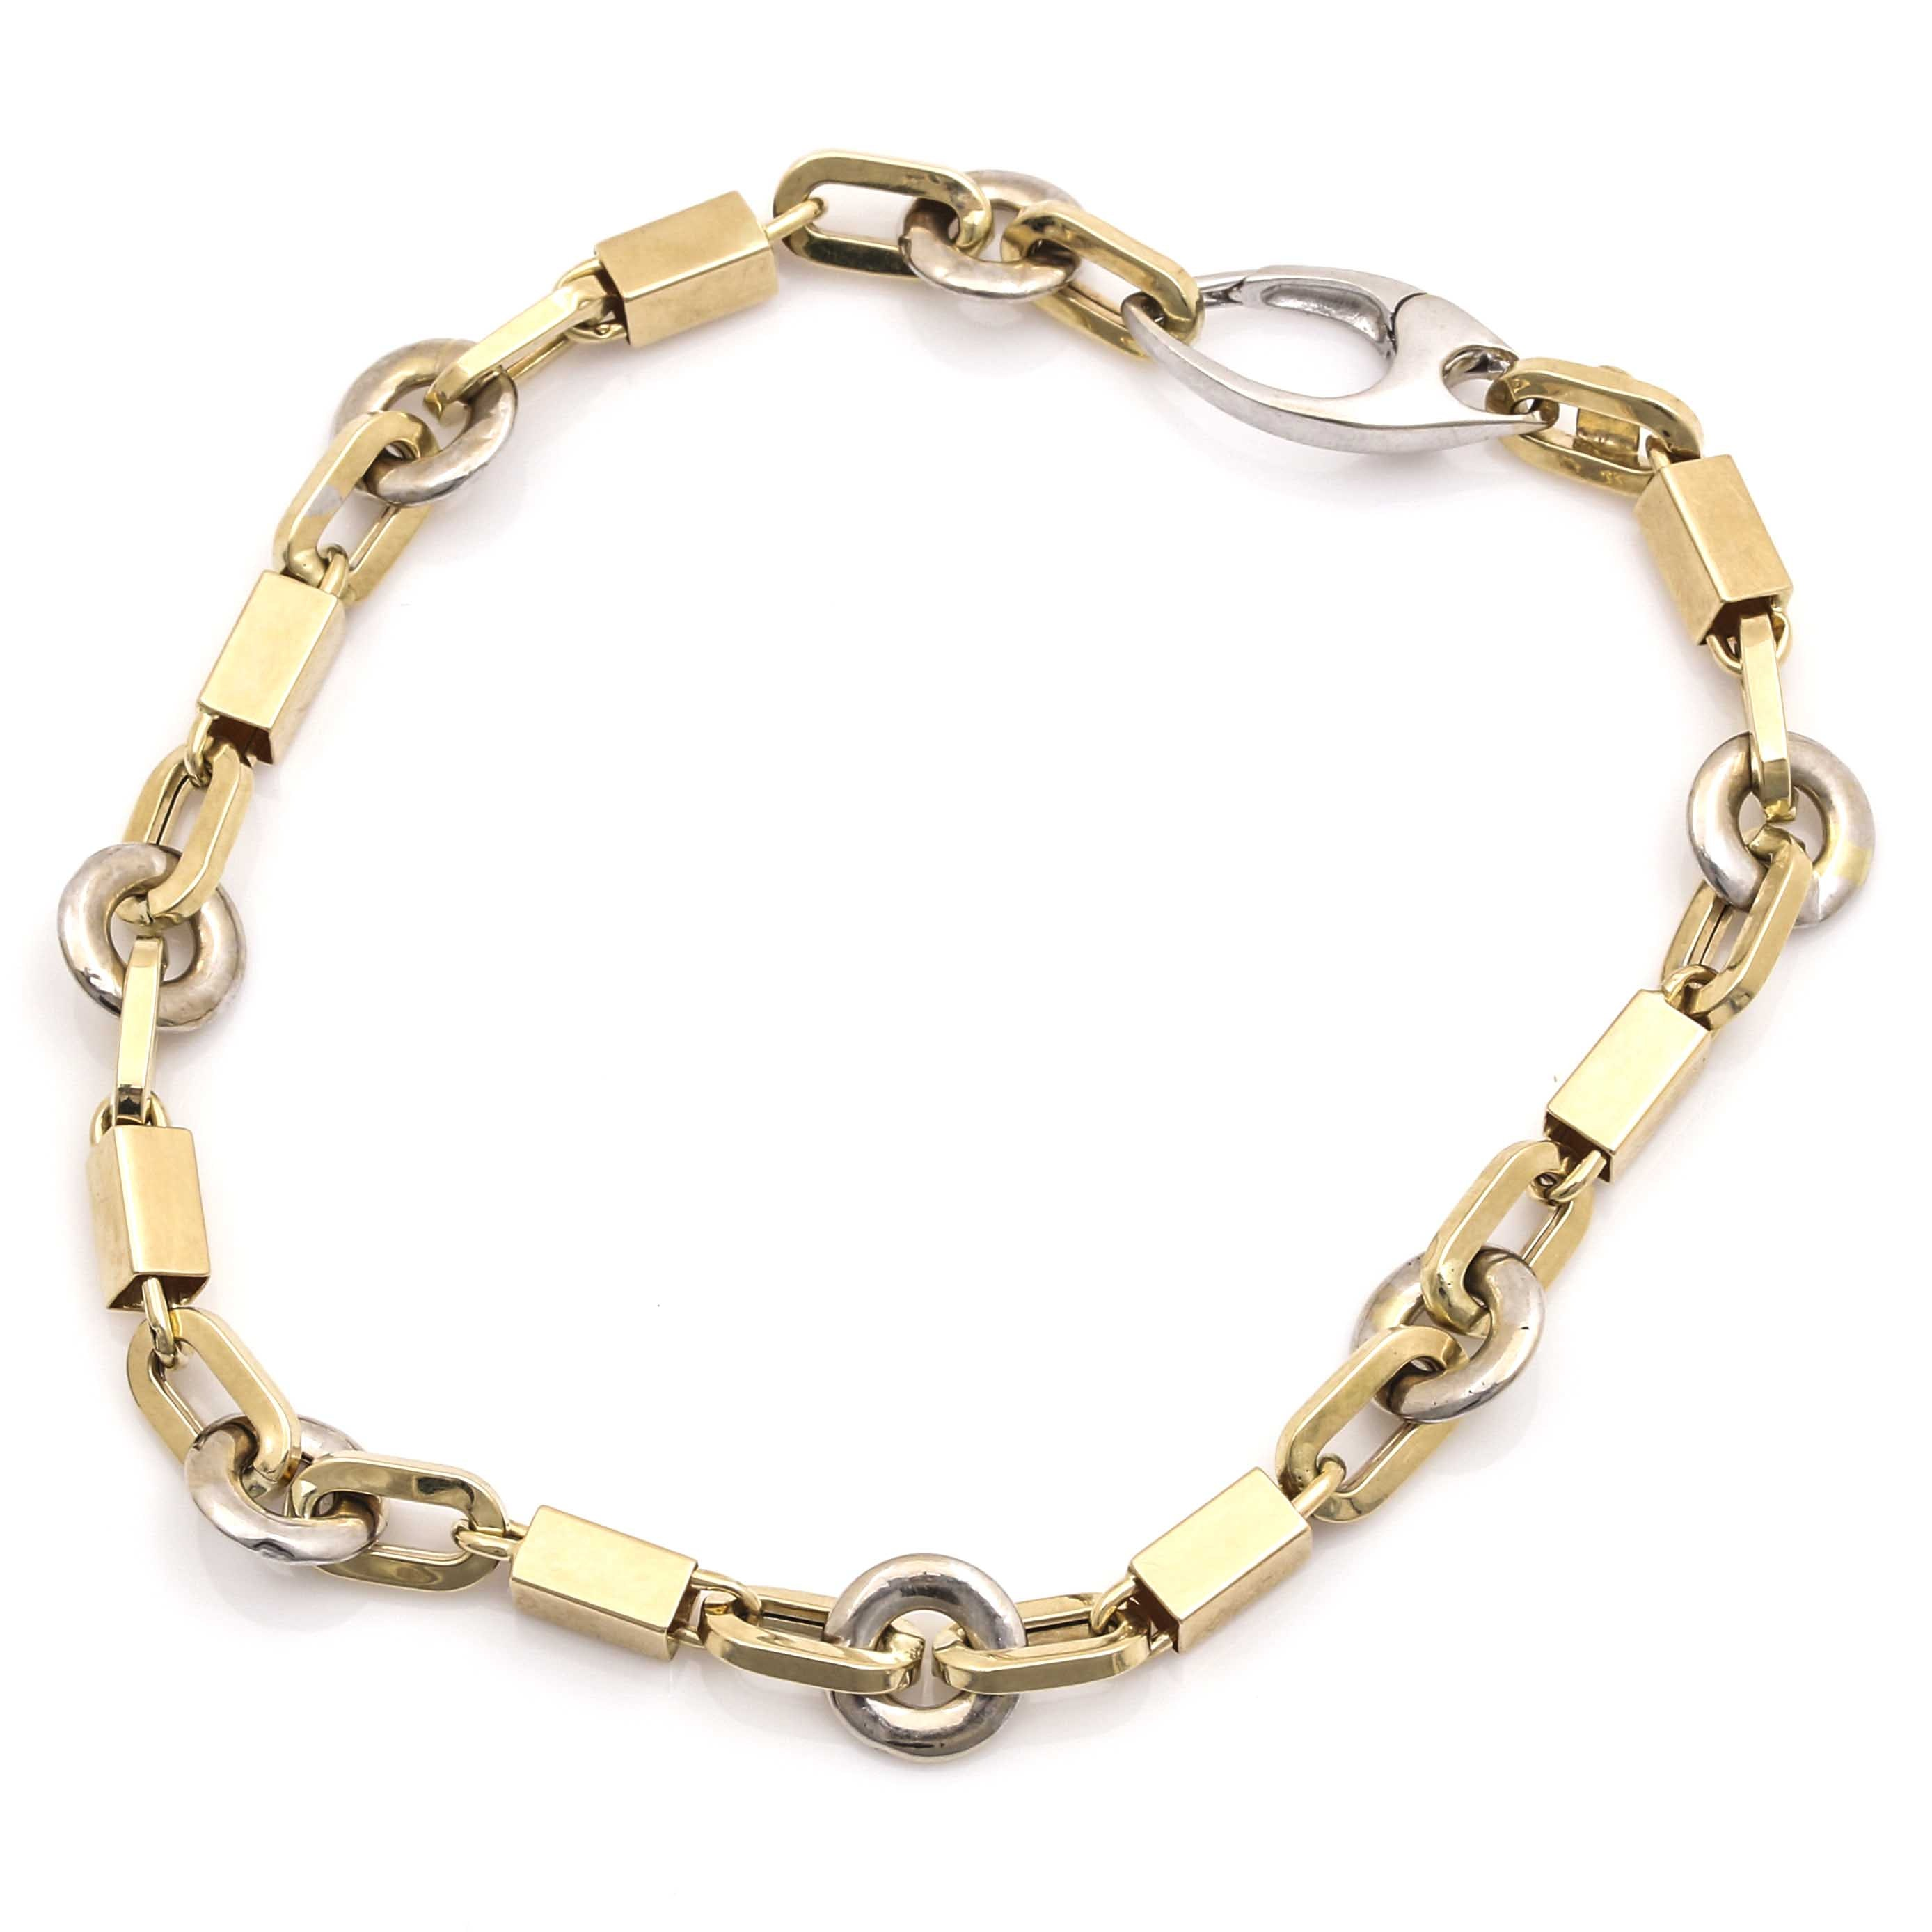 14K White and Yellow Gold Fancy Link Bracelet